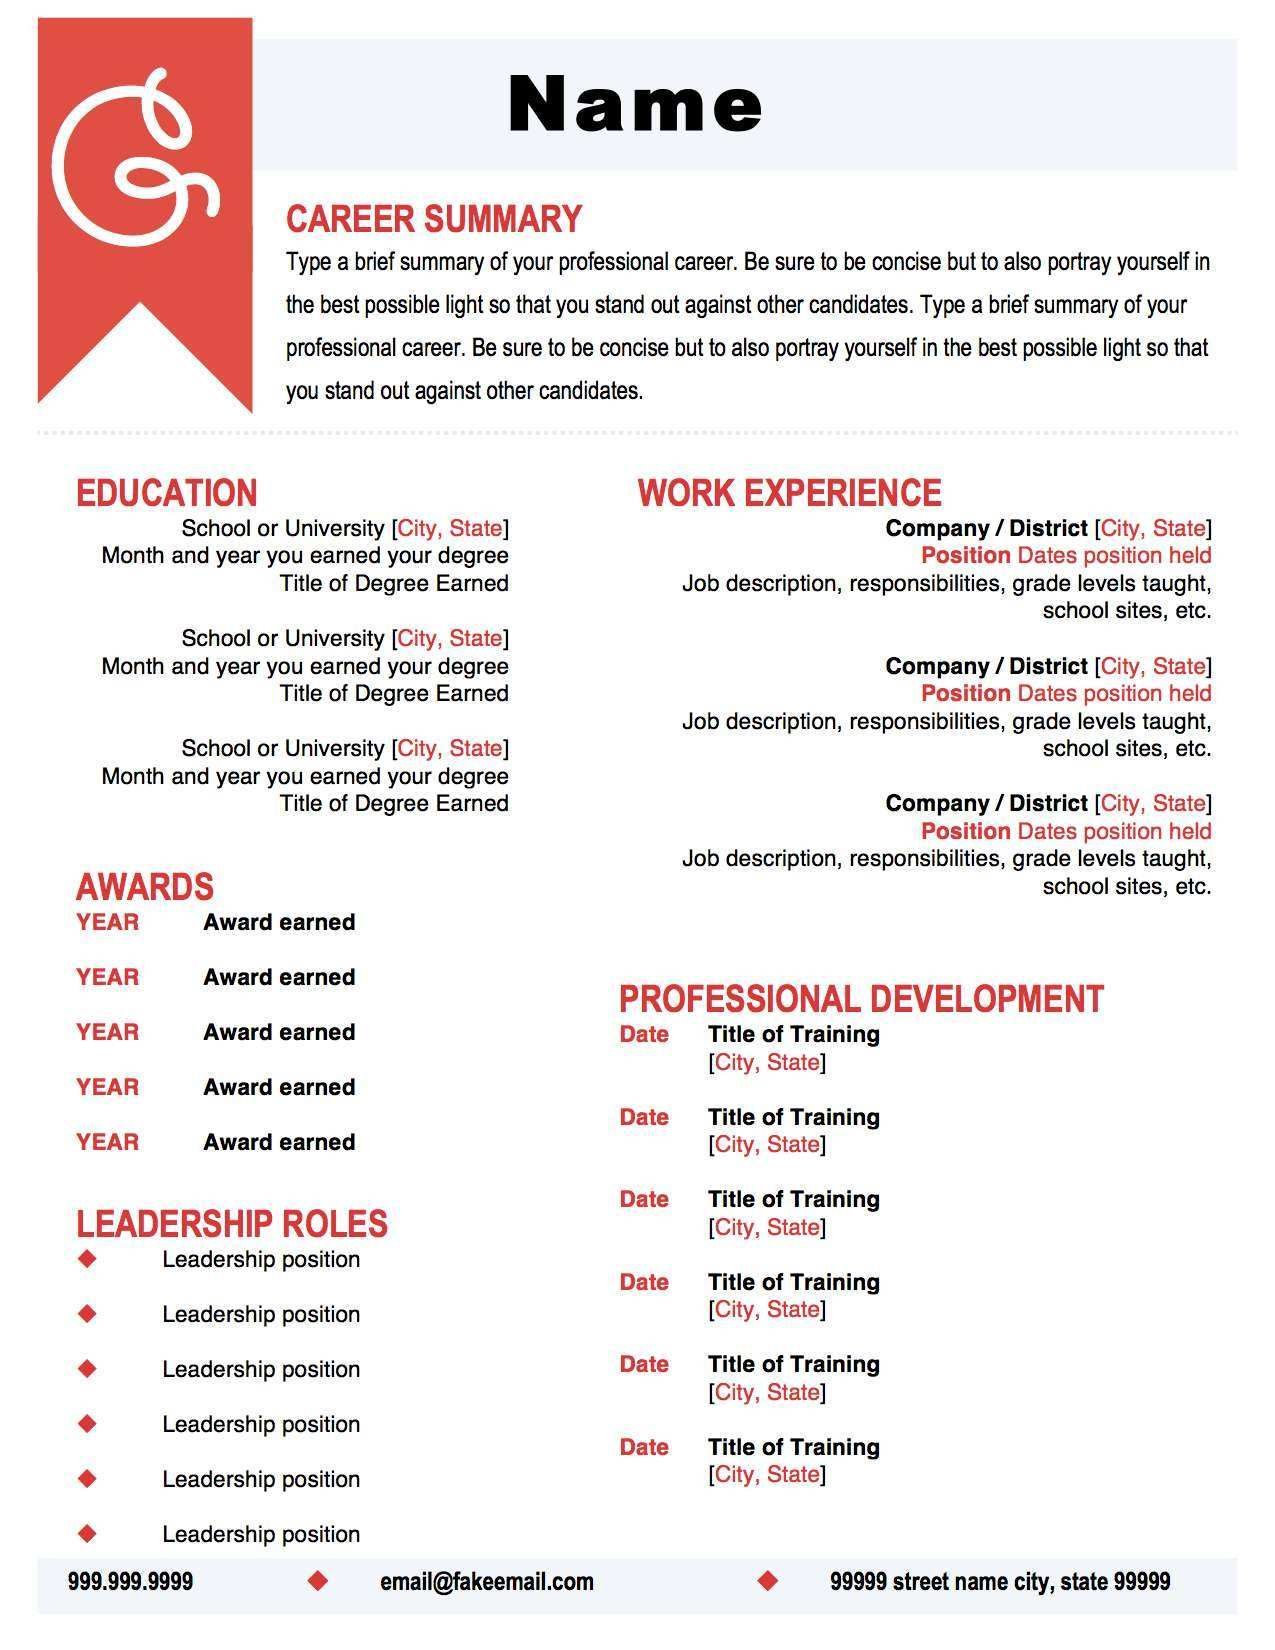 Nursing Resumes That Stand Out Coral And Black Resume Template Make Your Resume Pop With